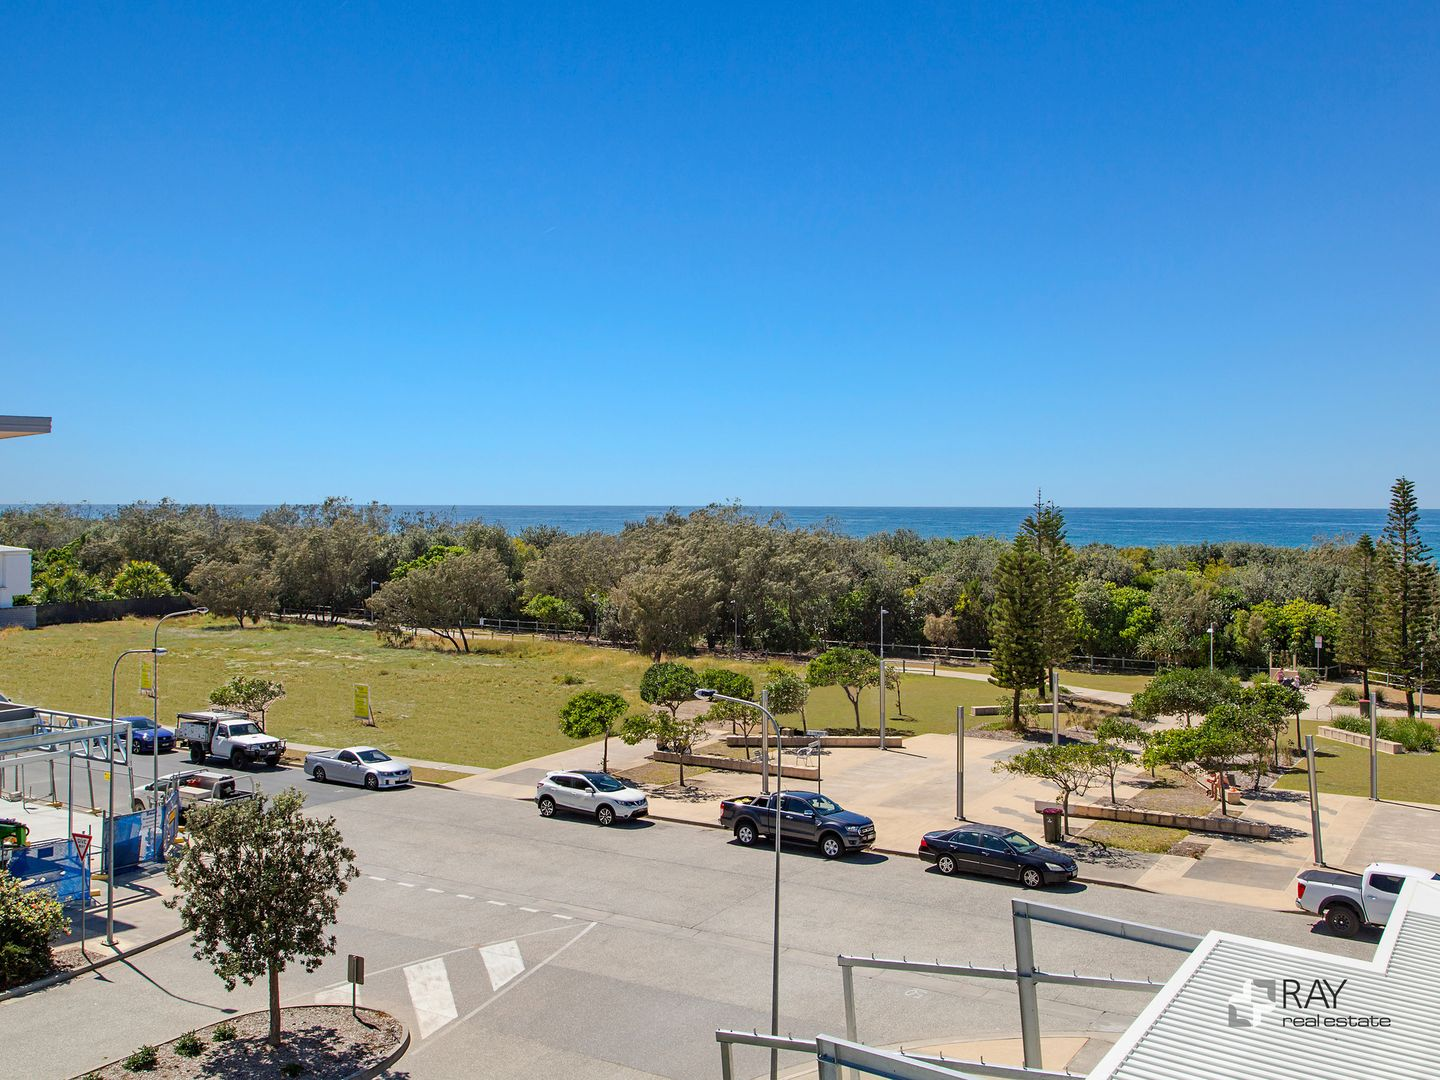 10/62 Cylinders Drive - Seaside Apartments, Kingscliff NSW 2487, Image 2